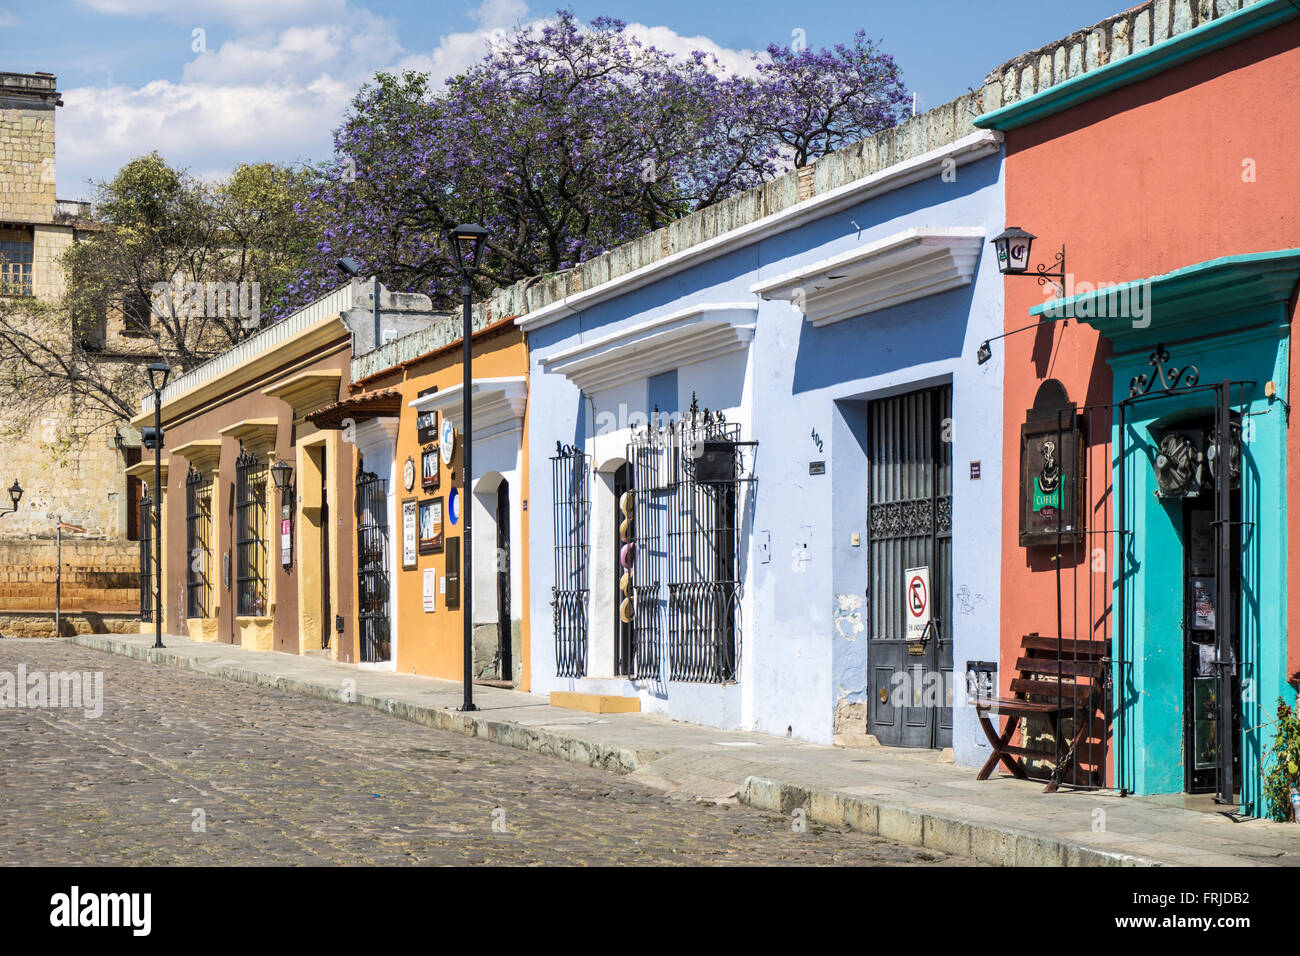 colorful row of upscale shop fronts on Calle 5 de Mayo with splendid blue blooming Jacaranda tree visible beyond - Stock Image